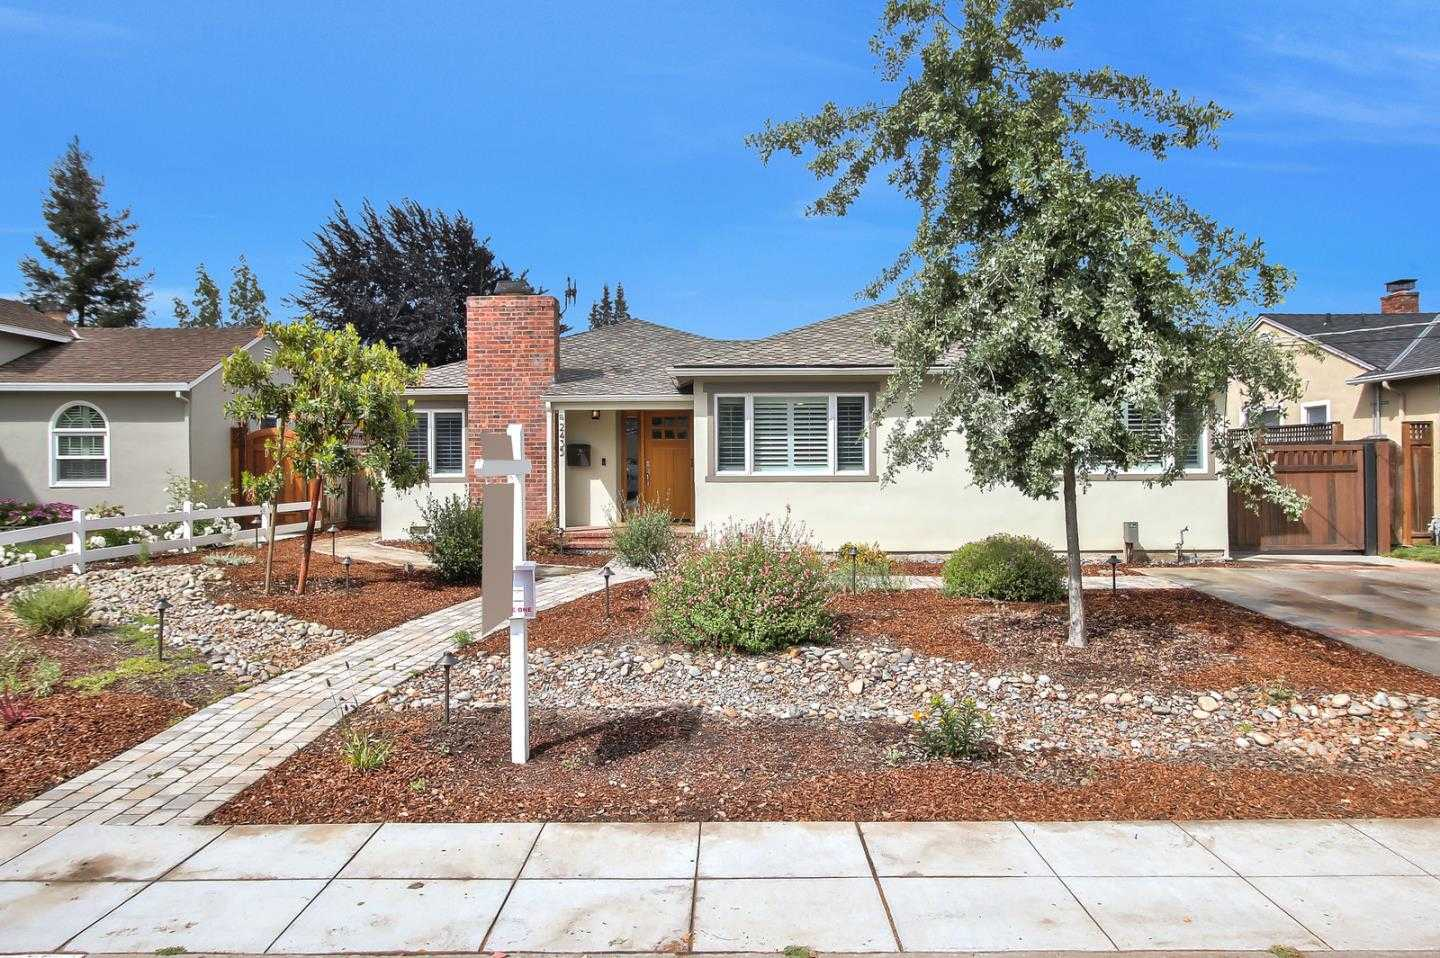 $1,488,888 - 3Br/2Ba -  for Sale in San Jose